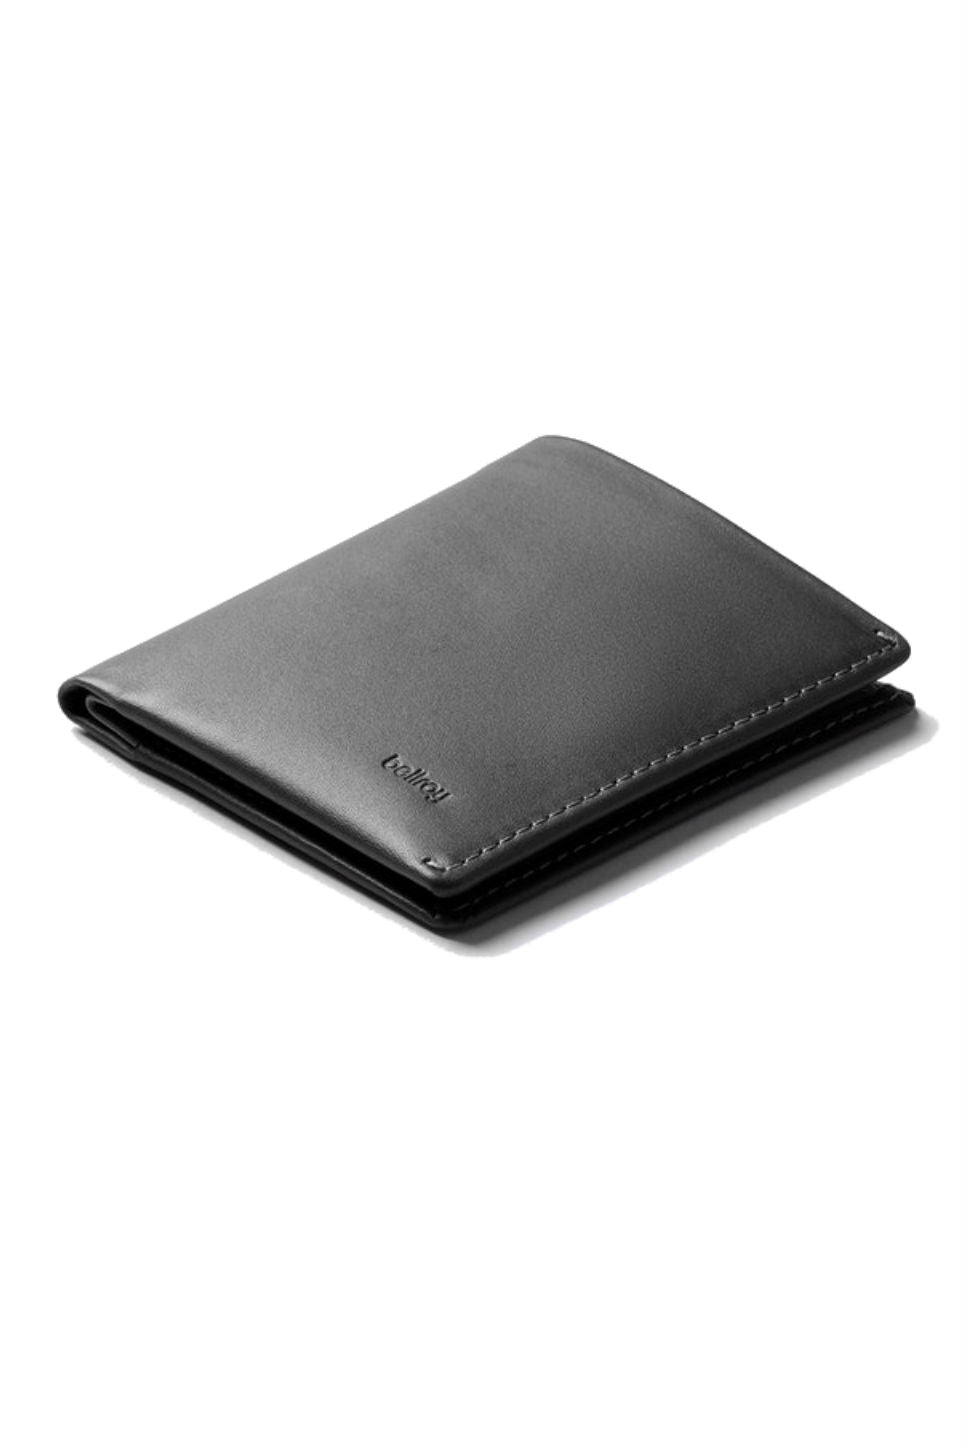 Bellroy - RFID Note Sleeve - Charcoal